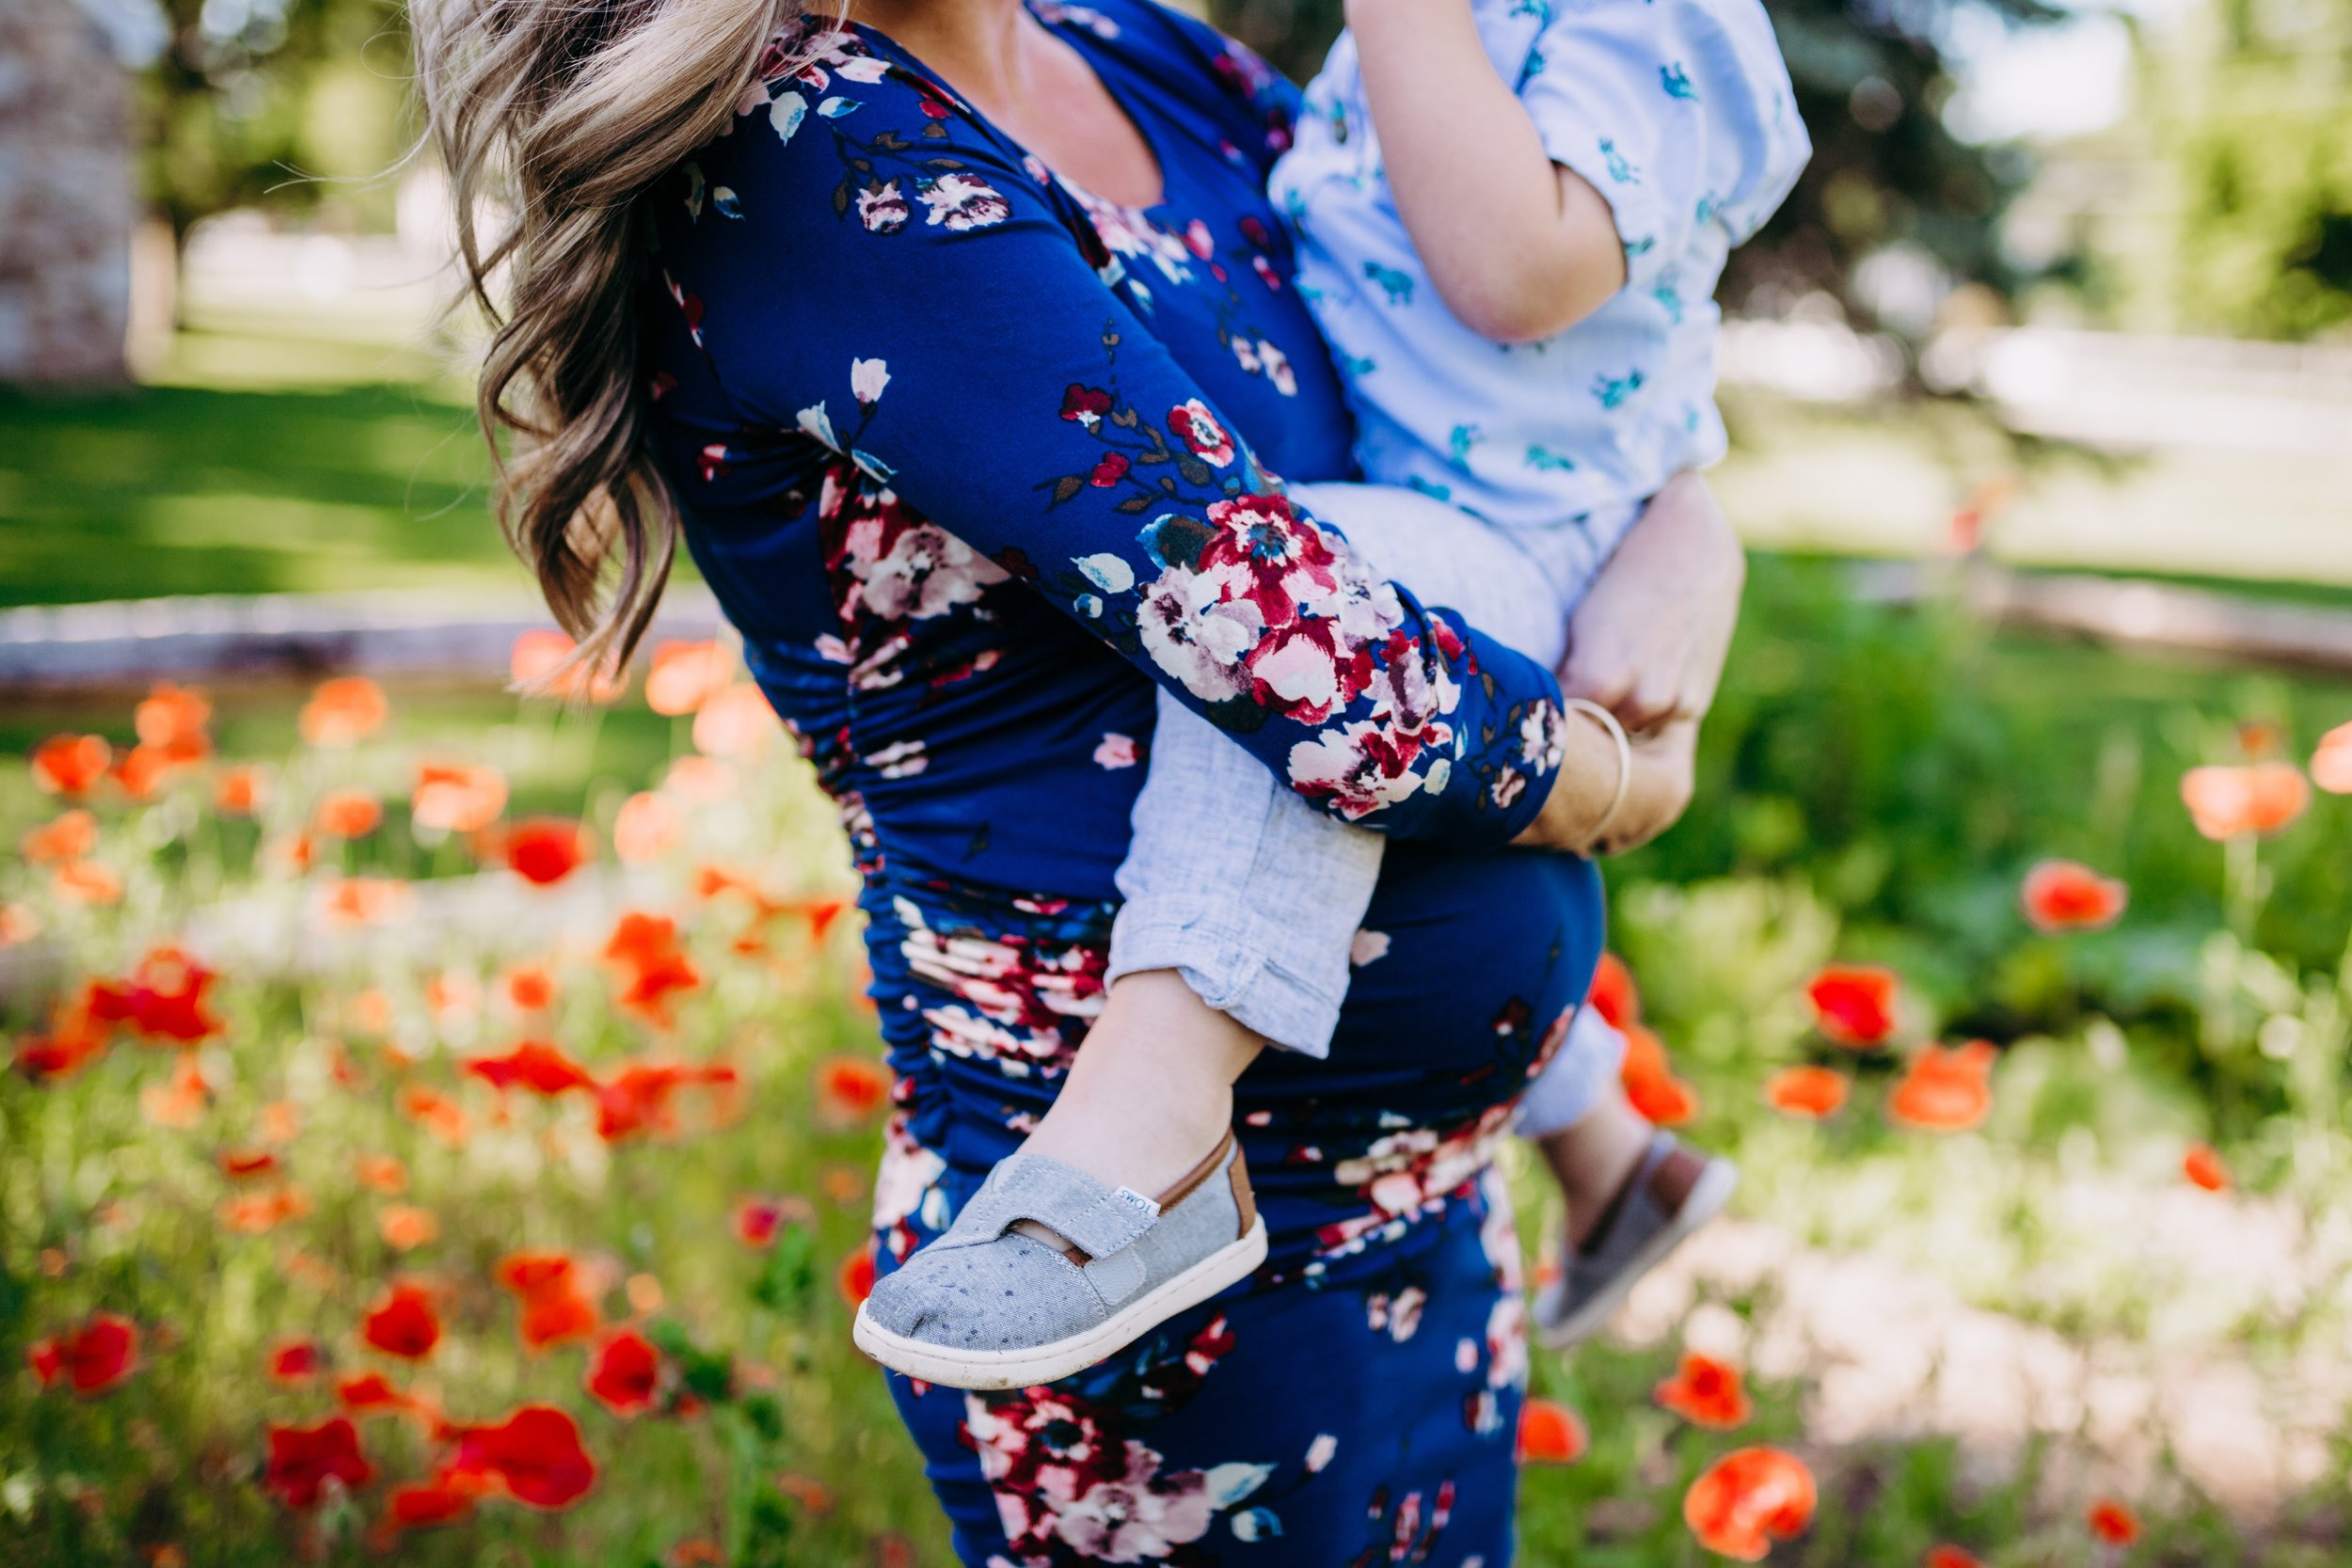 Lifestyle Maternity Photography Session in a Poppy Field _ Desiree Hoelzle Photography